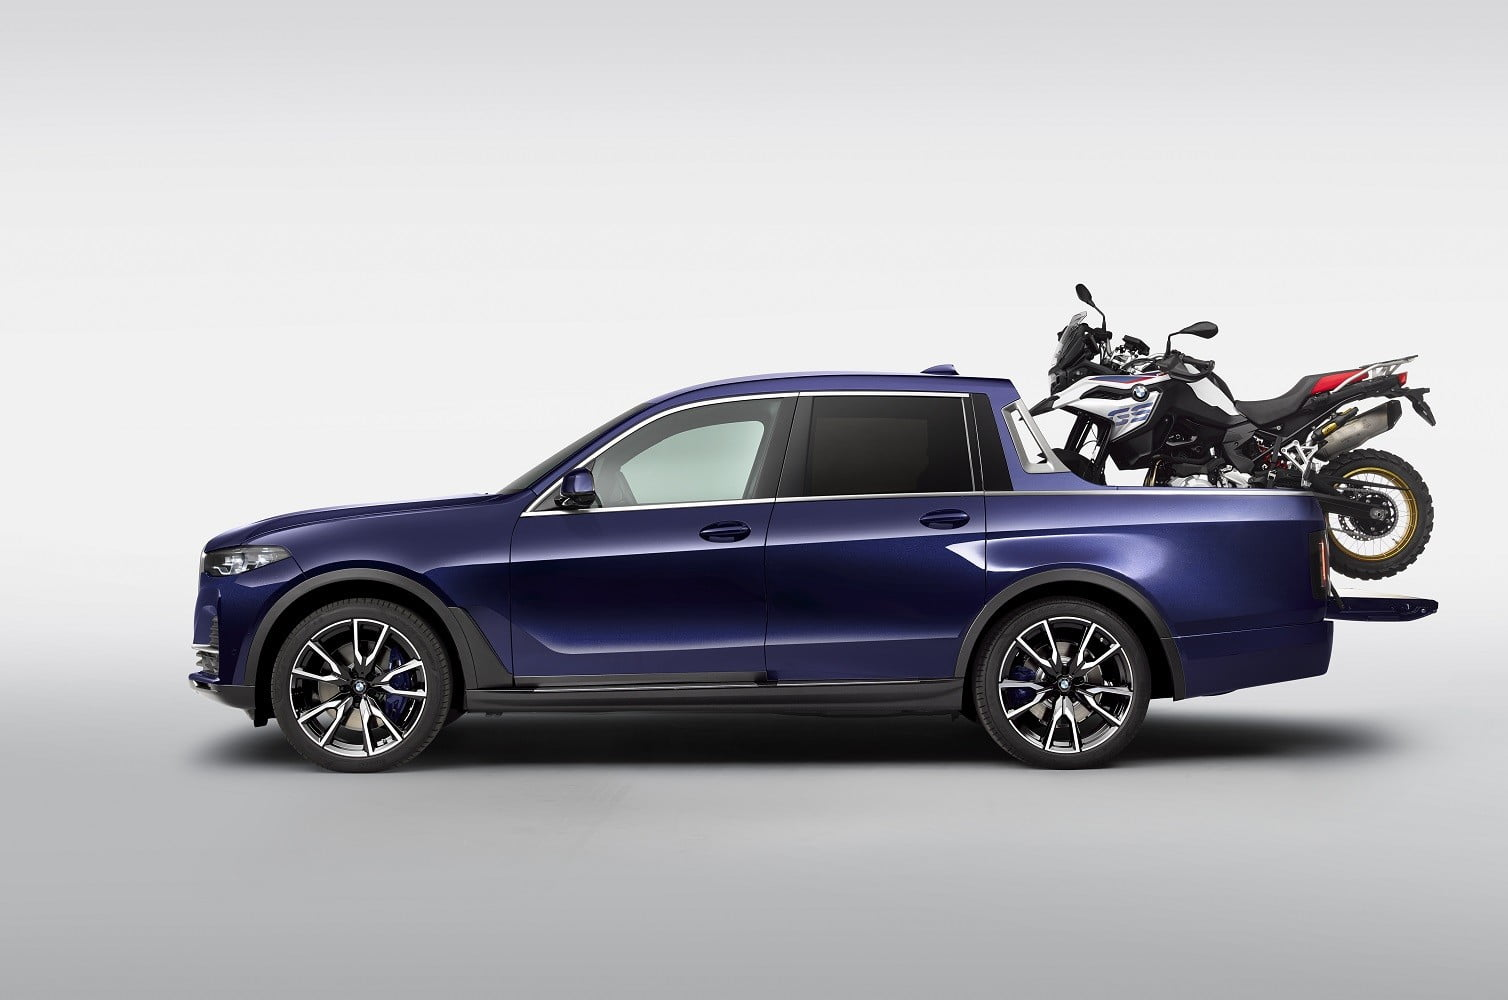 2019 bmw x7 pickup truck concept is perfect for hauling p90357108 highres the wi